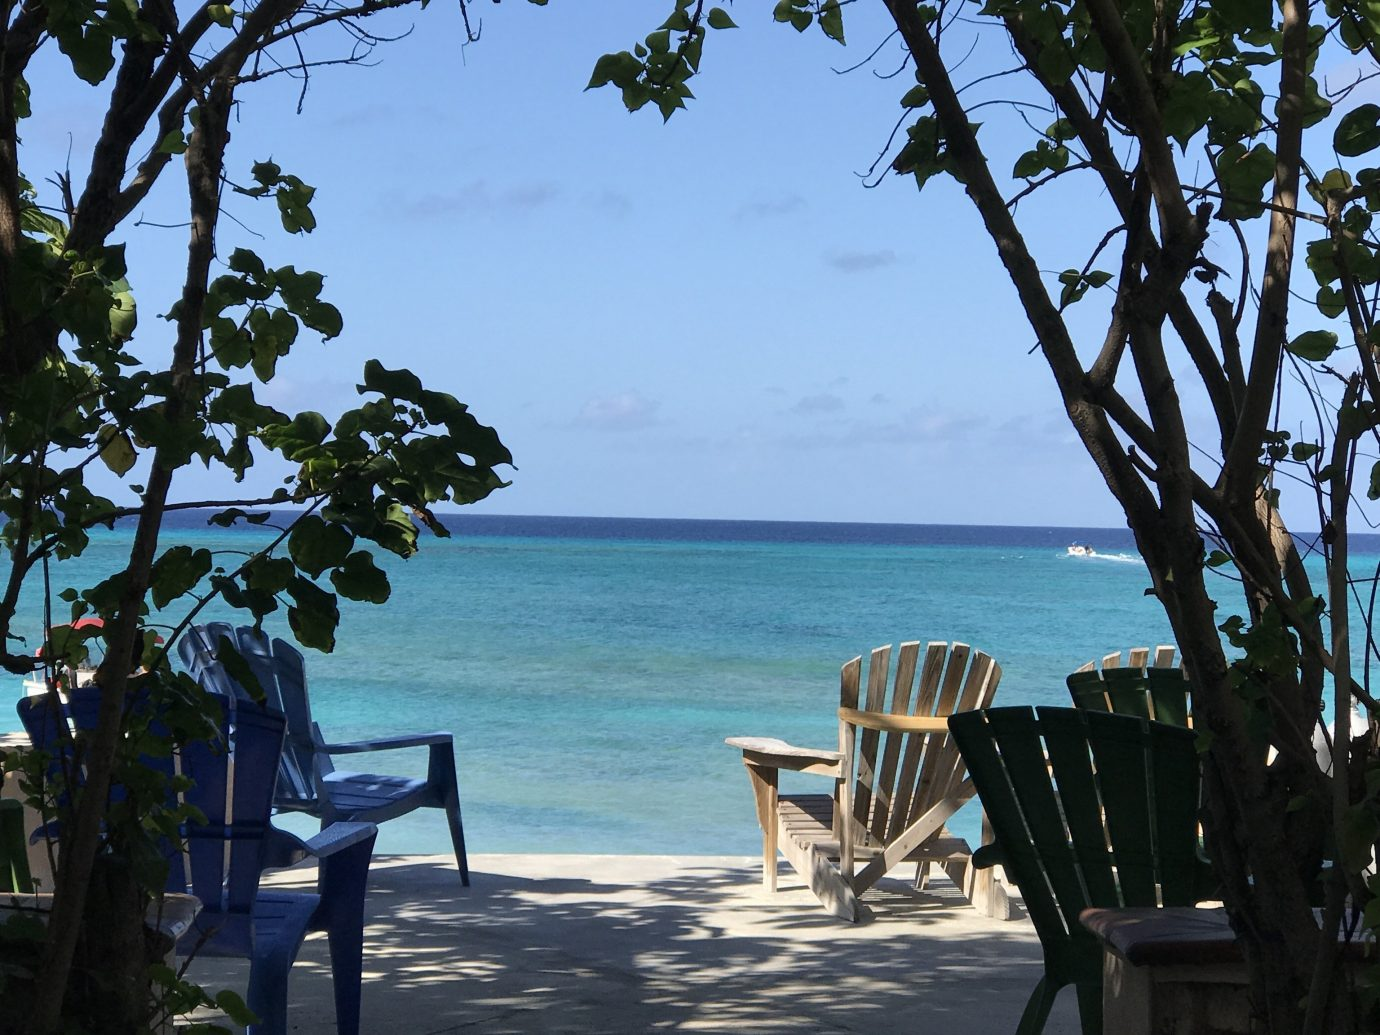 Hotels outdoor tree sky water Beach chair body of water vacation Sea Ocean Resort estate Coast bay caribbean arecales tropics overlooking shade shore day dining table